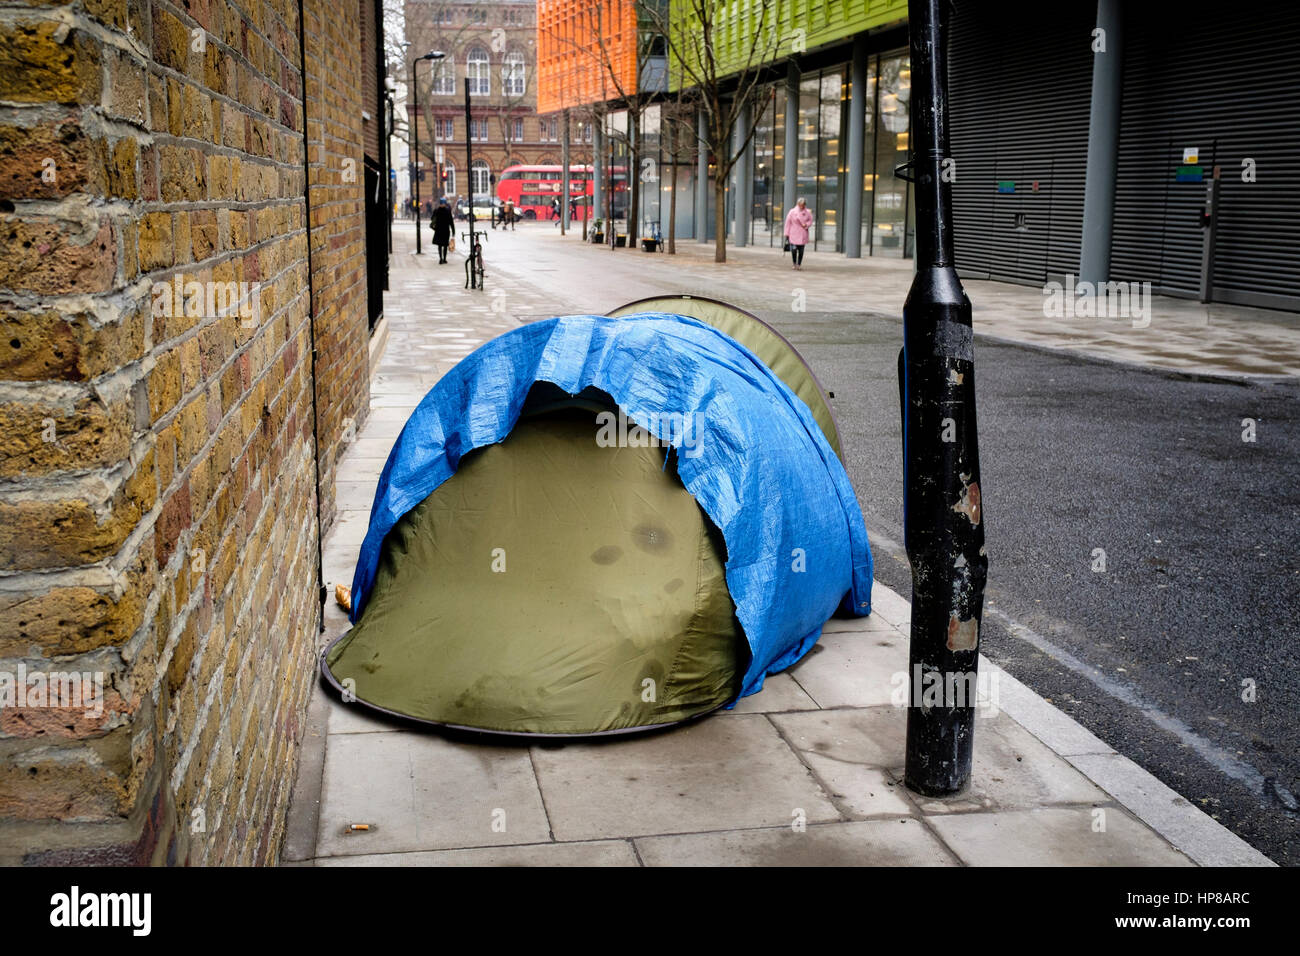 Tent pitched in central London street provides shelter for one of the city's homeless. - Stock Image